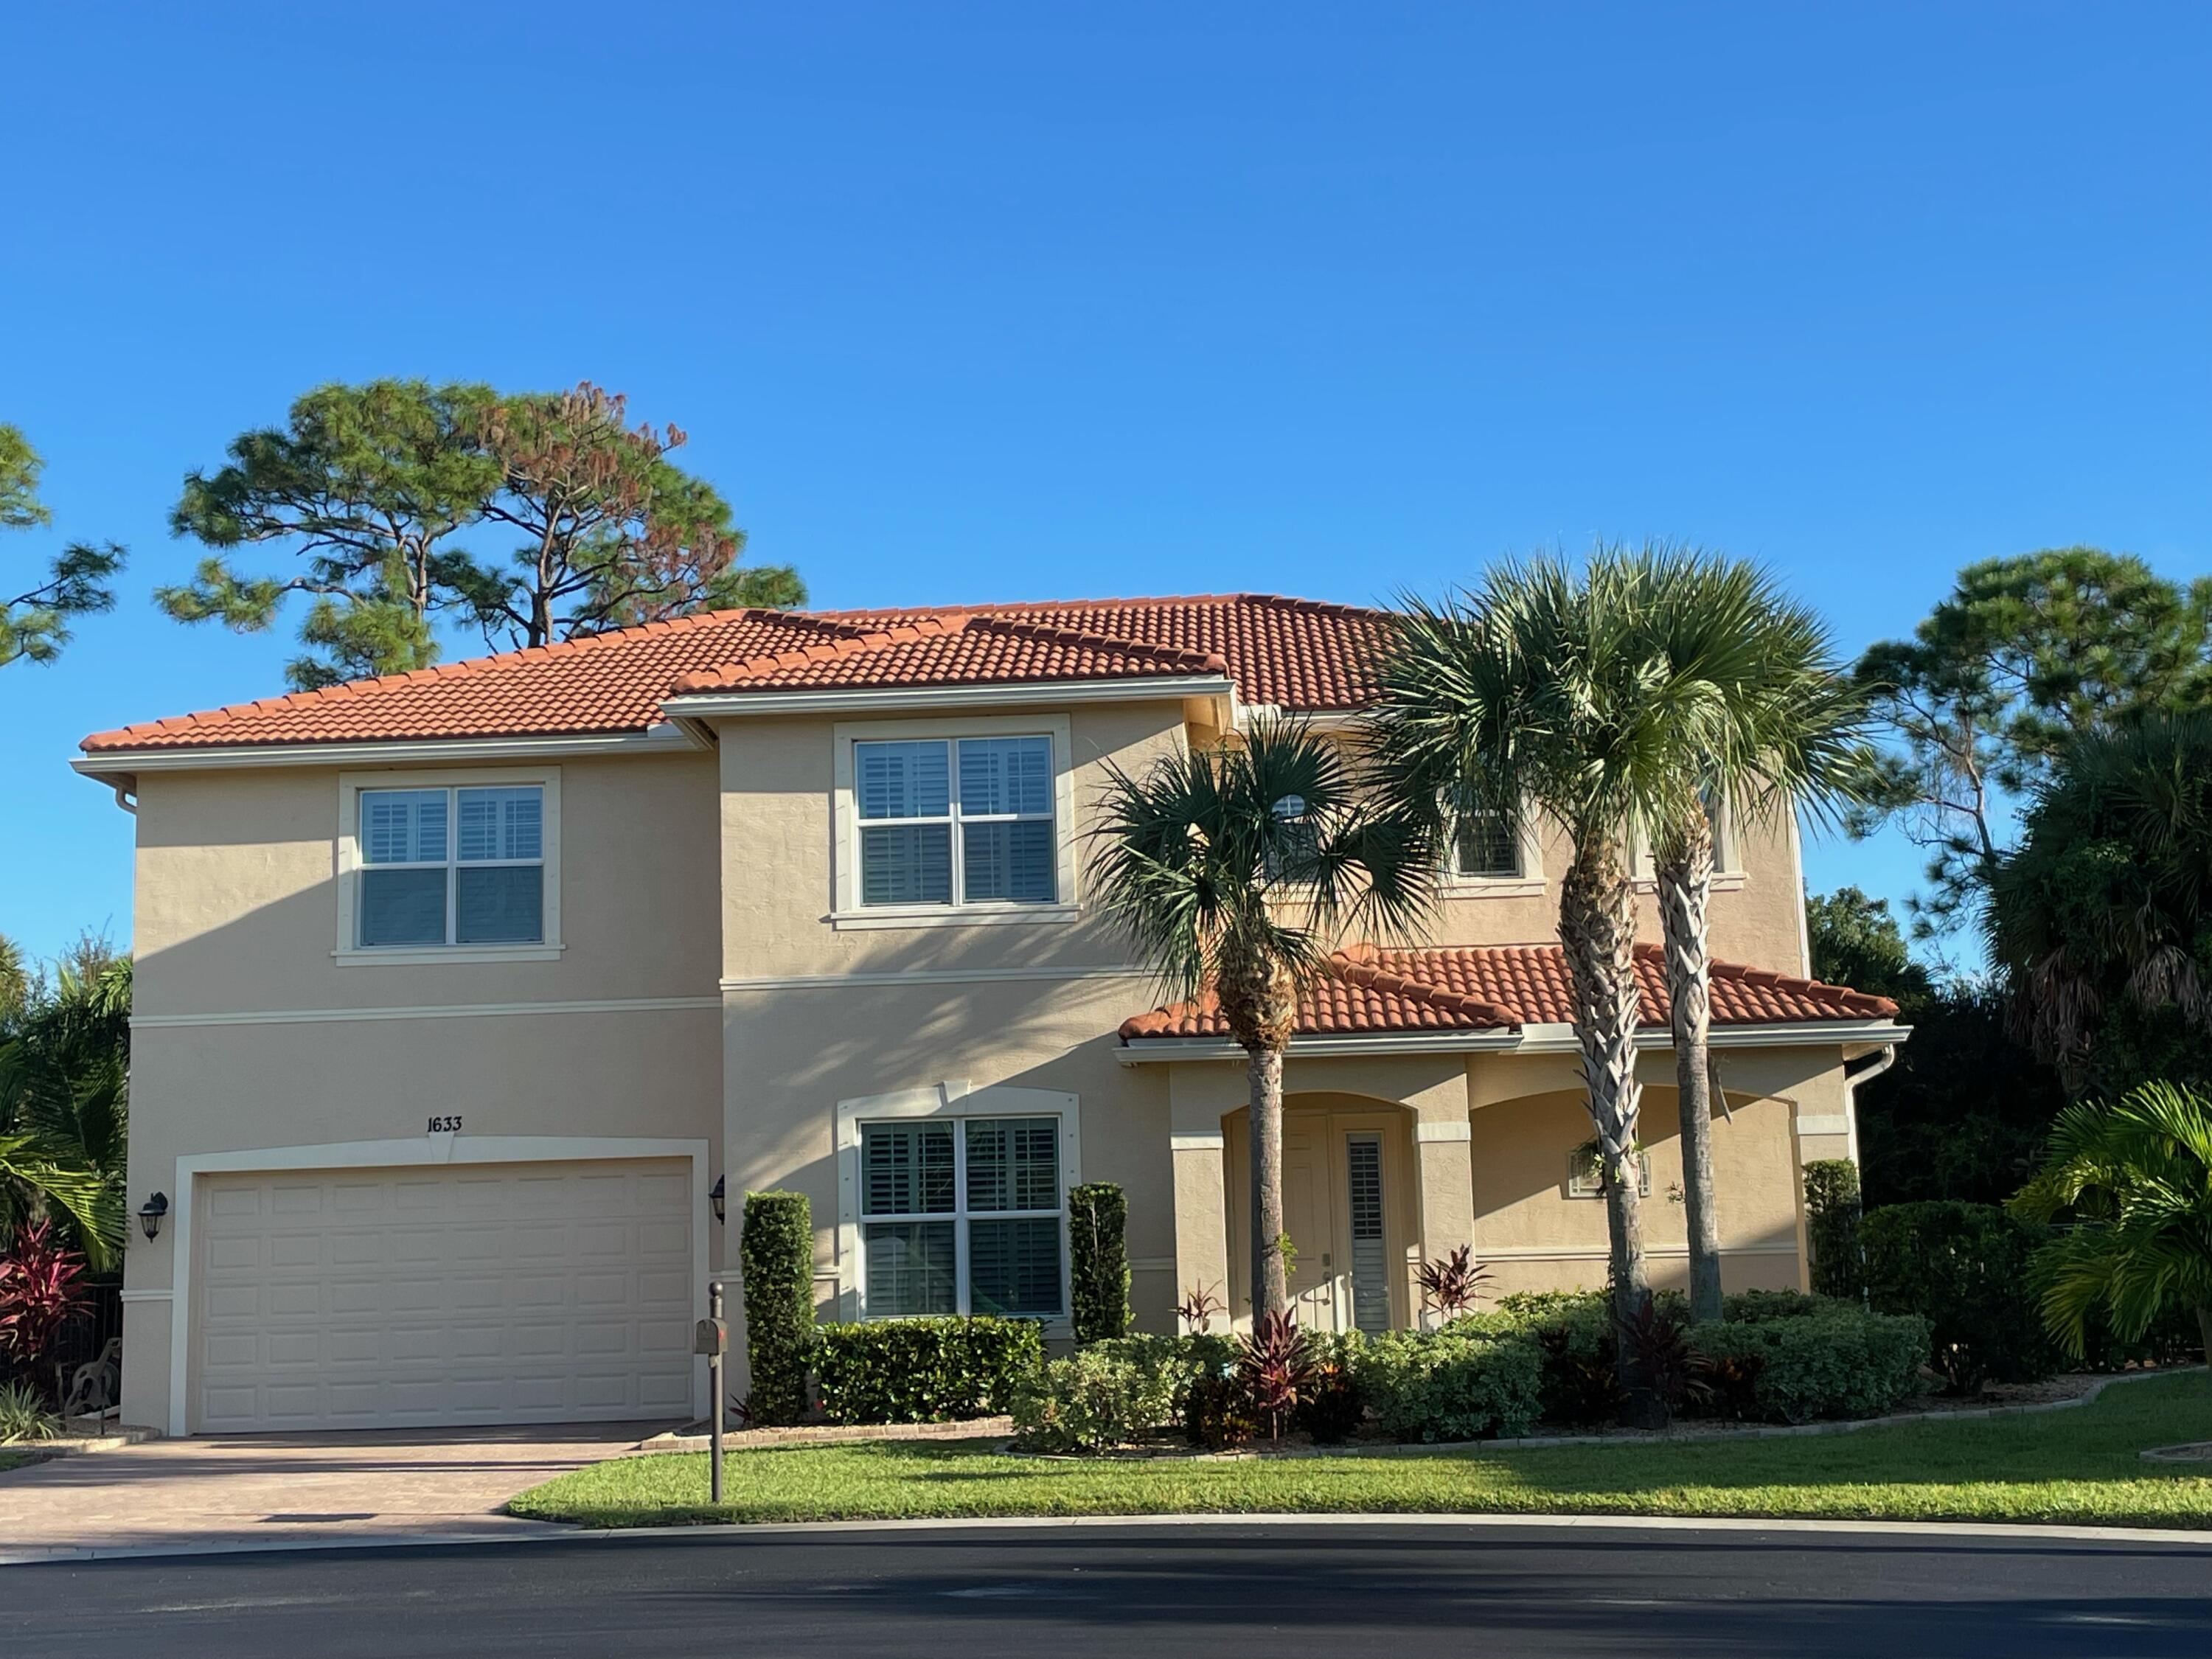 Home for sale in Creekside Palm City Florida